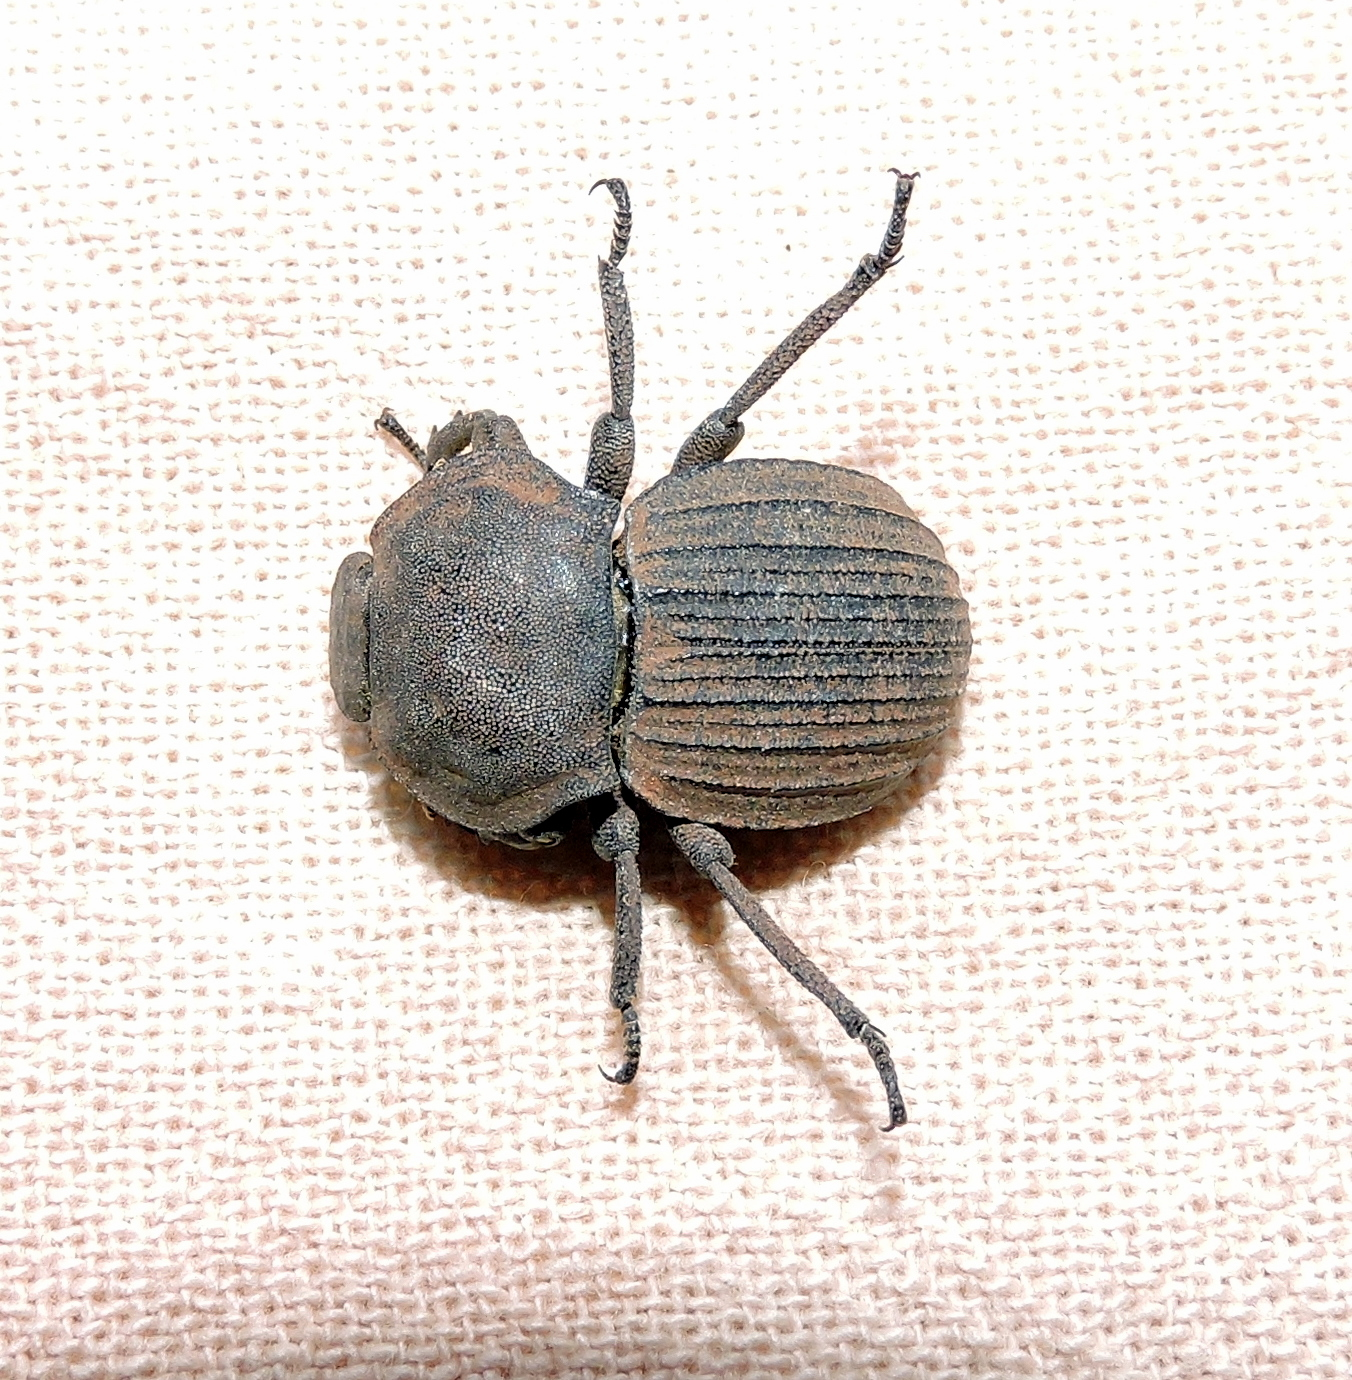 anomalipus-elephas-large-armored-darkling-beetle-copy